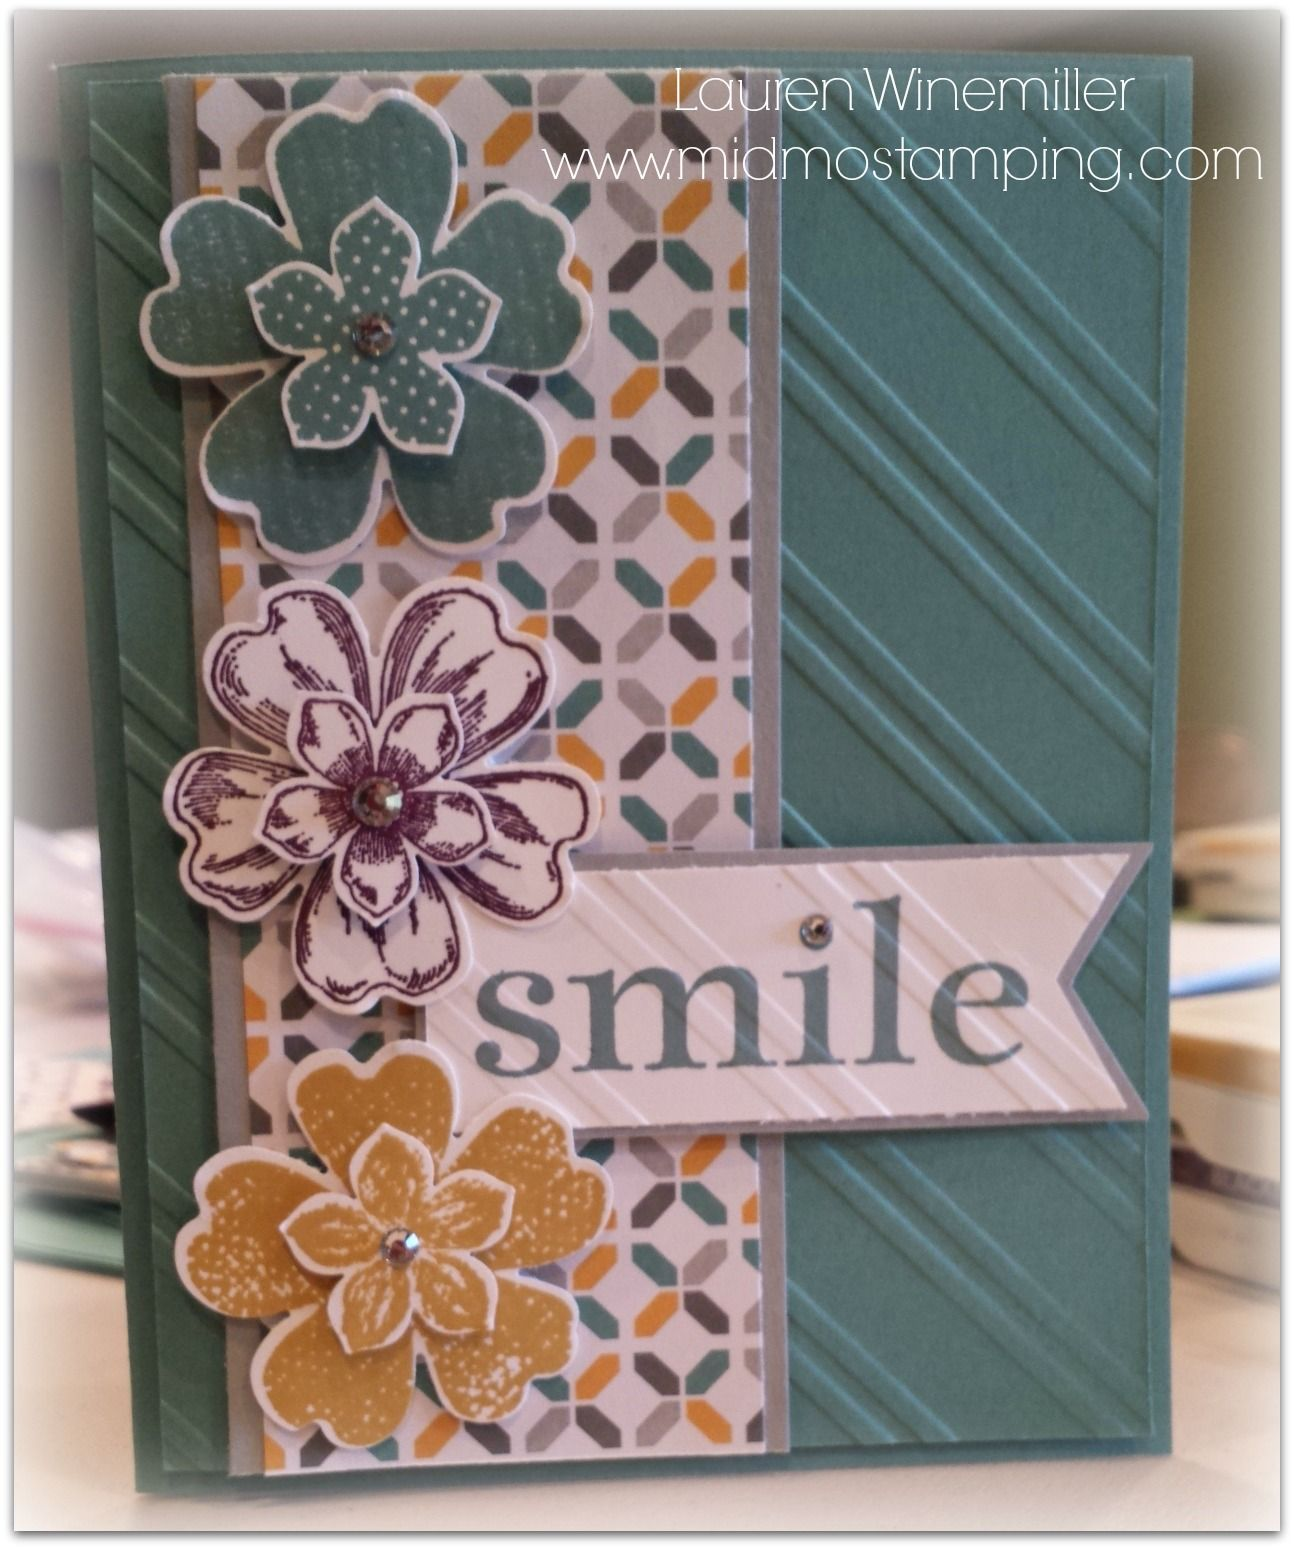 2014 In Colors Stampin Up: Stampin' Up! 2014-16 In Colors, Flower Shop, Petite Petals